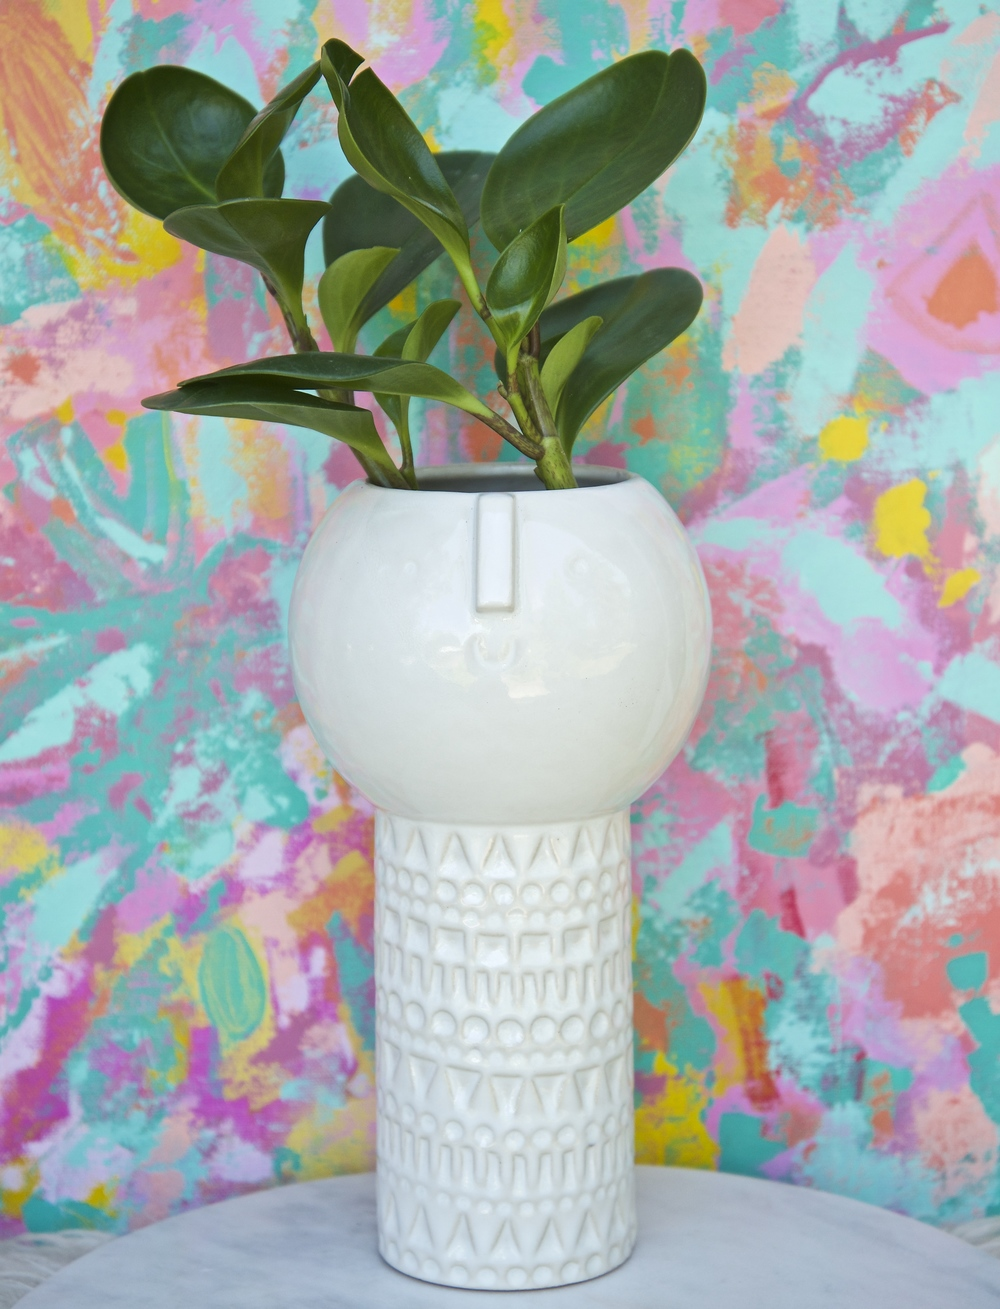 "Established in 2012, Atelier Stella is an ever changing collection of unique ceramics hand made by Stella Baggott in Brighton, England. I purchased this amazing vase at West Elm, its got a retro vibe that I adore. I love how they collaborate with artisans and makers all over the world. It's already found a new home in our living room.  ""My work is modern, stylish and brings a smile! I lovingly design, hand build, fire in my kiln and glaze small batches of work to give you a truly unique, one of a kind work of art, so if you like a piece grab it while you can! I design pieces for those who like vintage finds."""